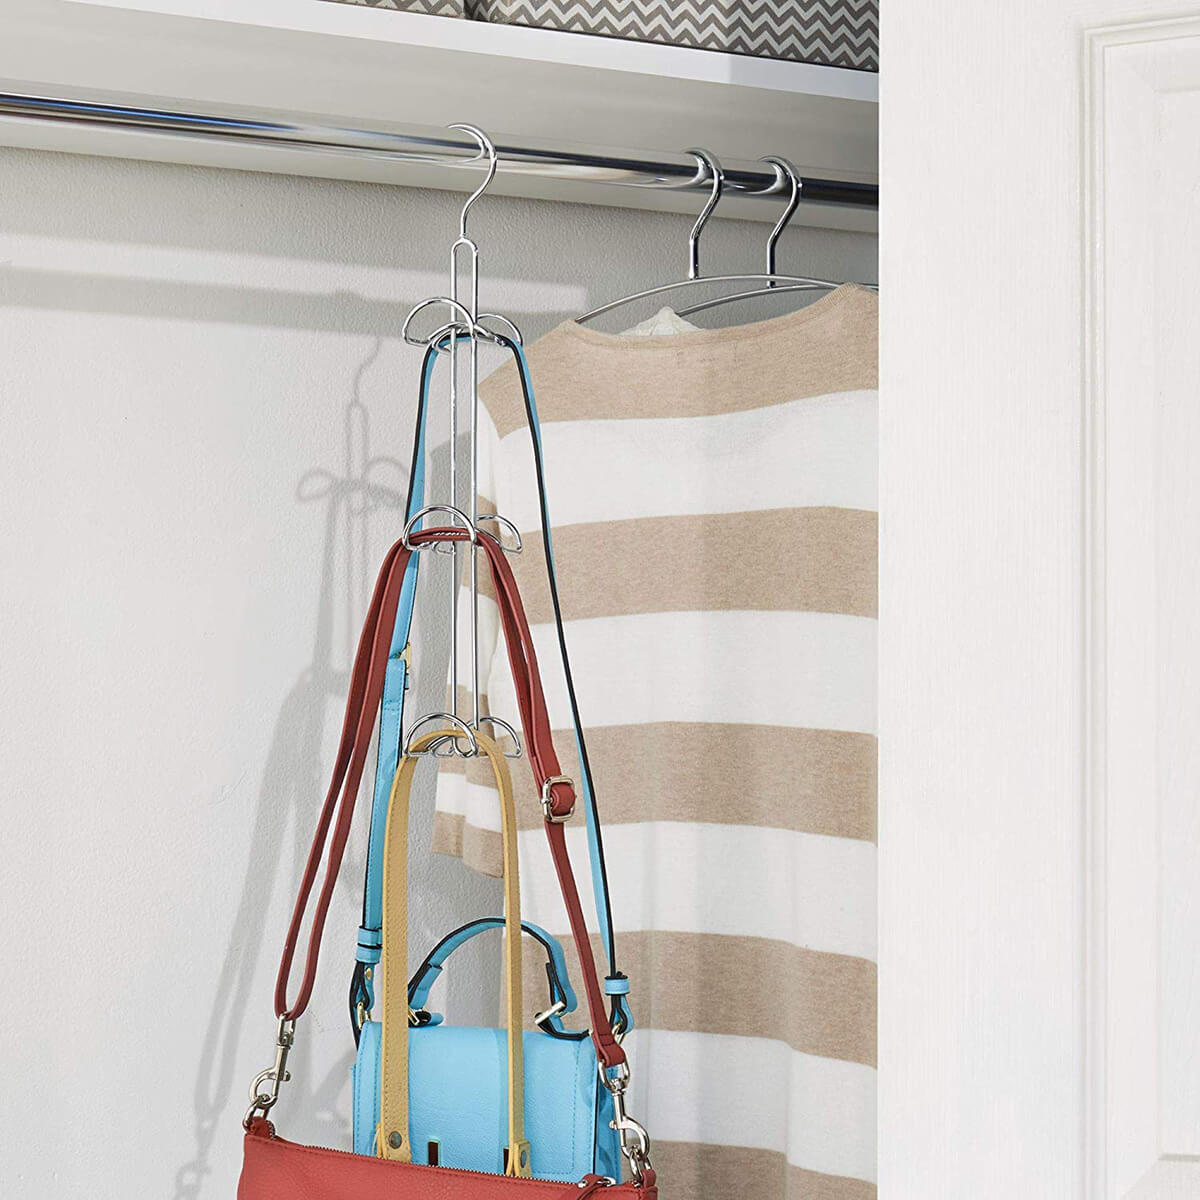 Innovative Three-Level Purse Hanger